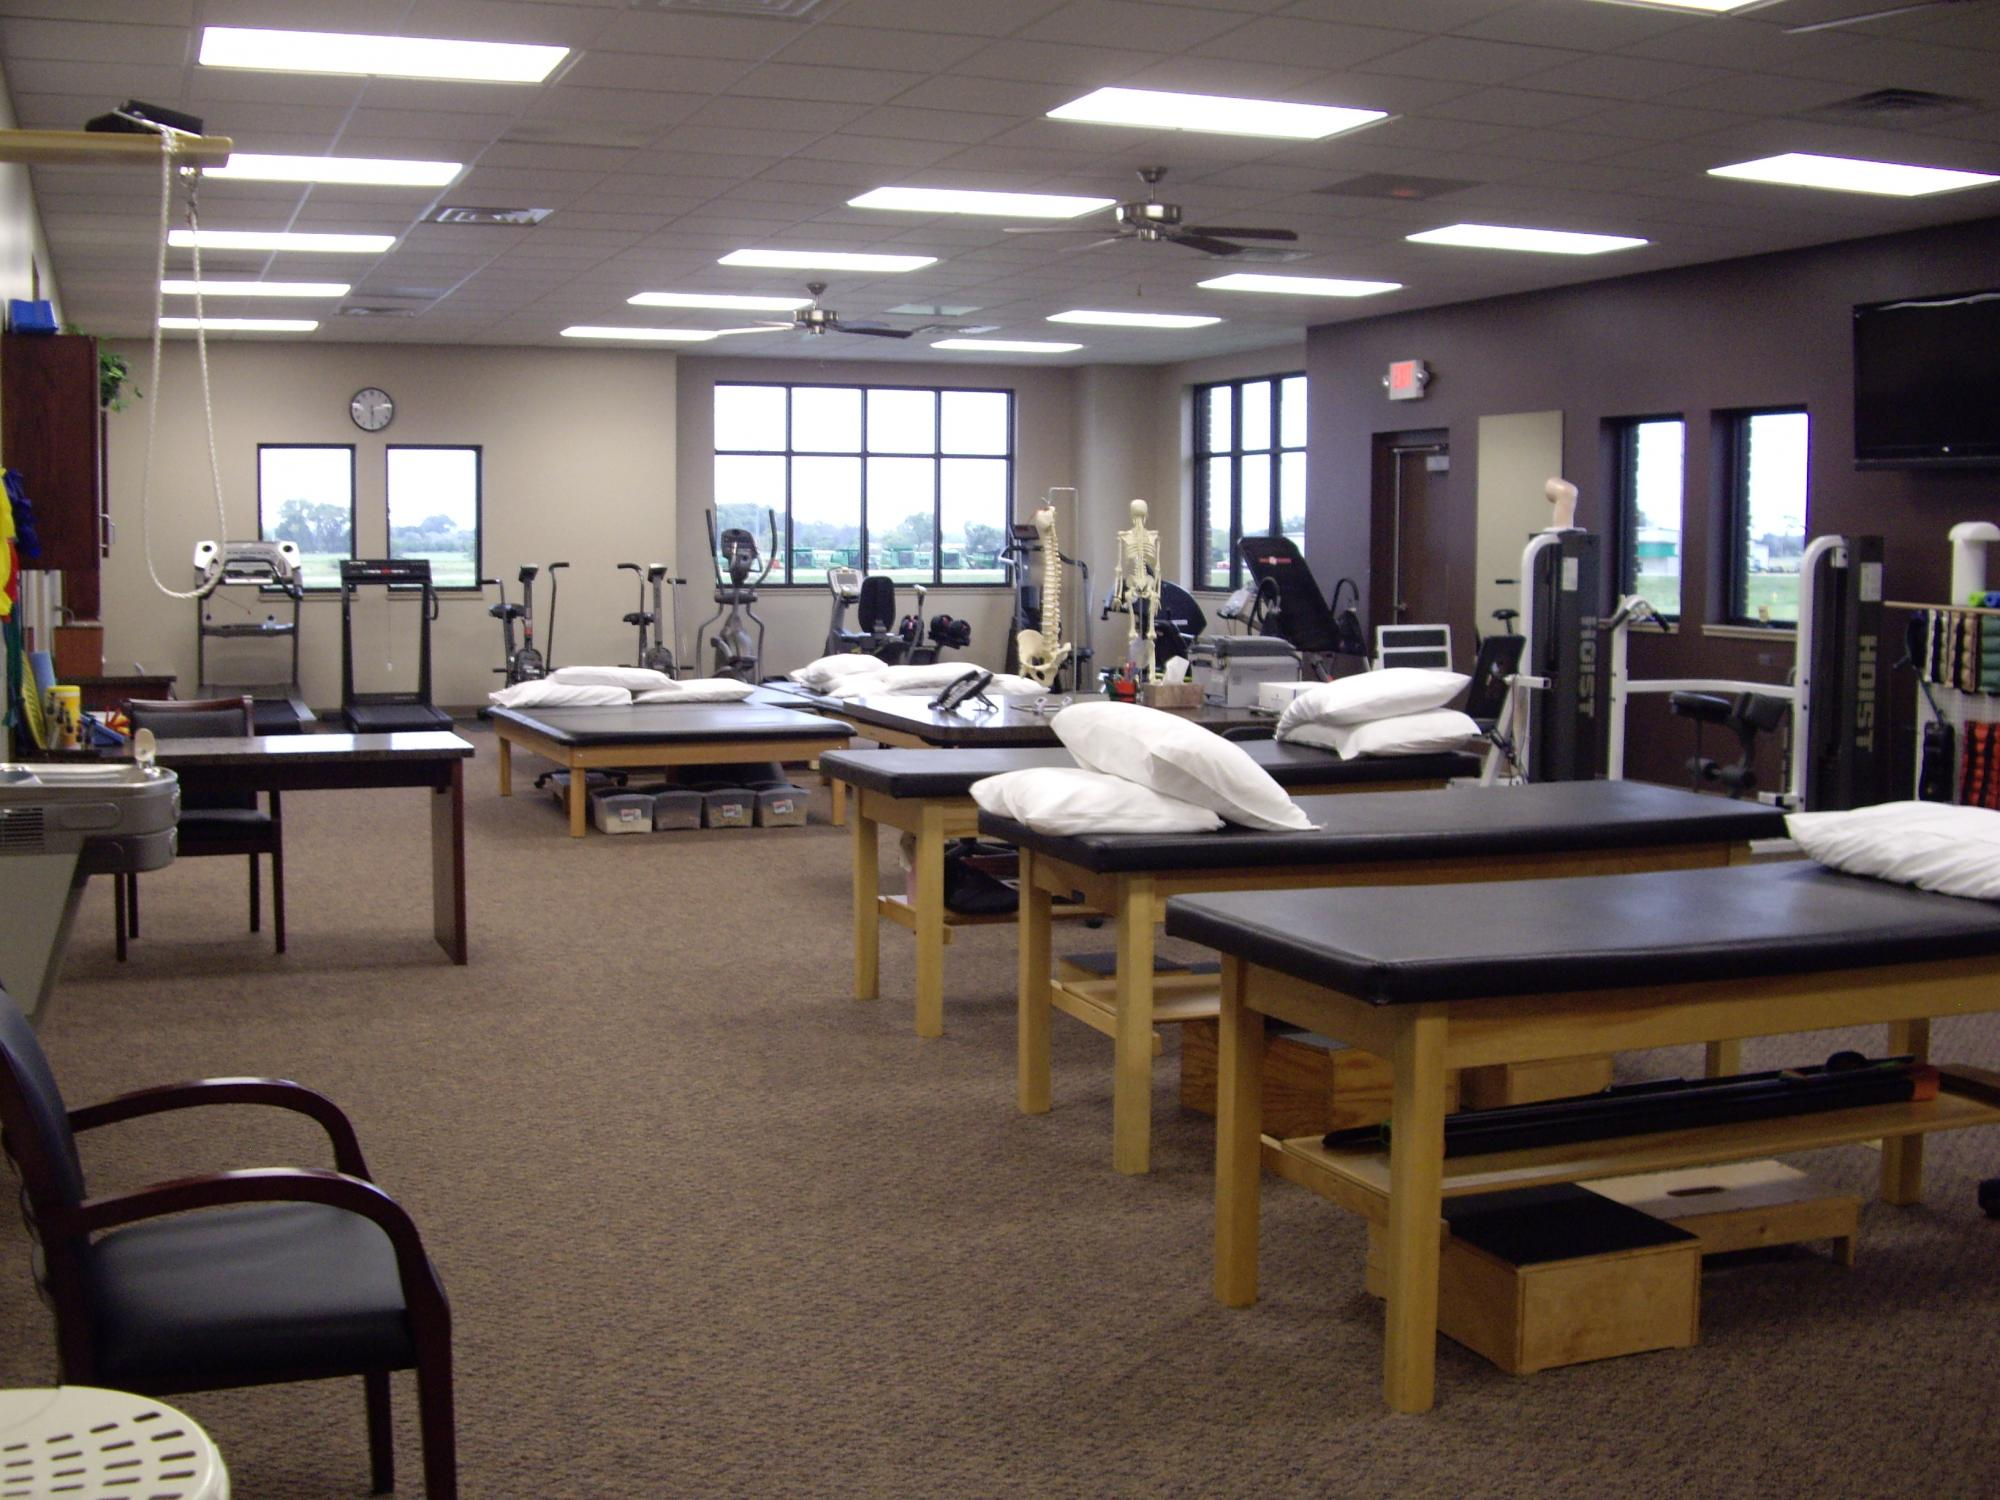 Spier Physical Therapy Beckenhauer Construction Inc General Contractor Norfolk Kearney